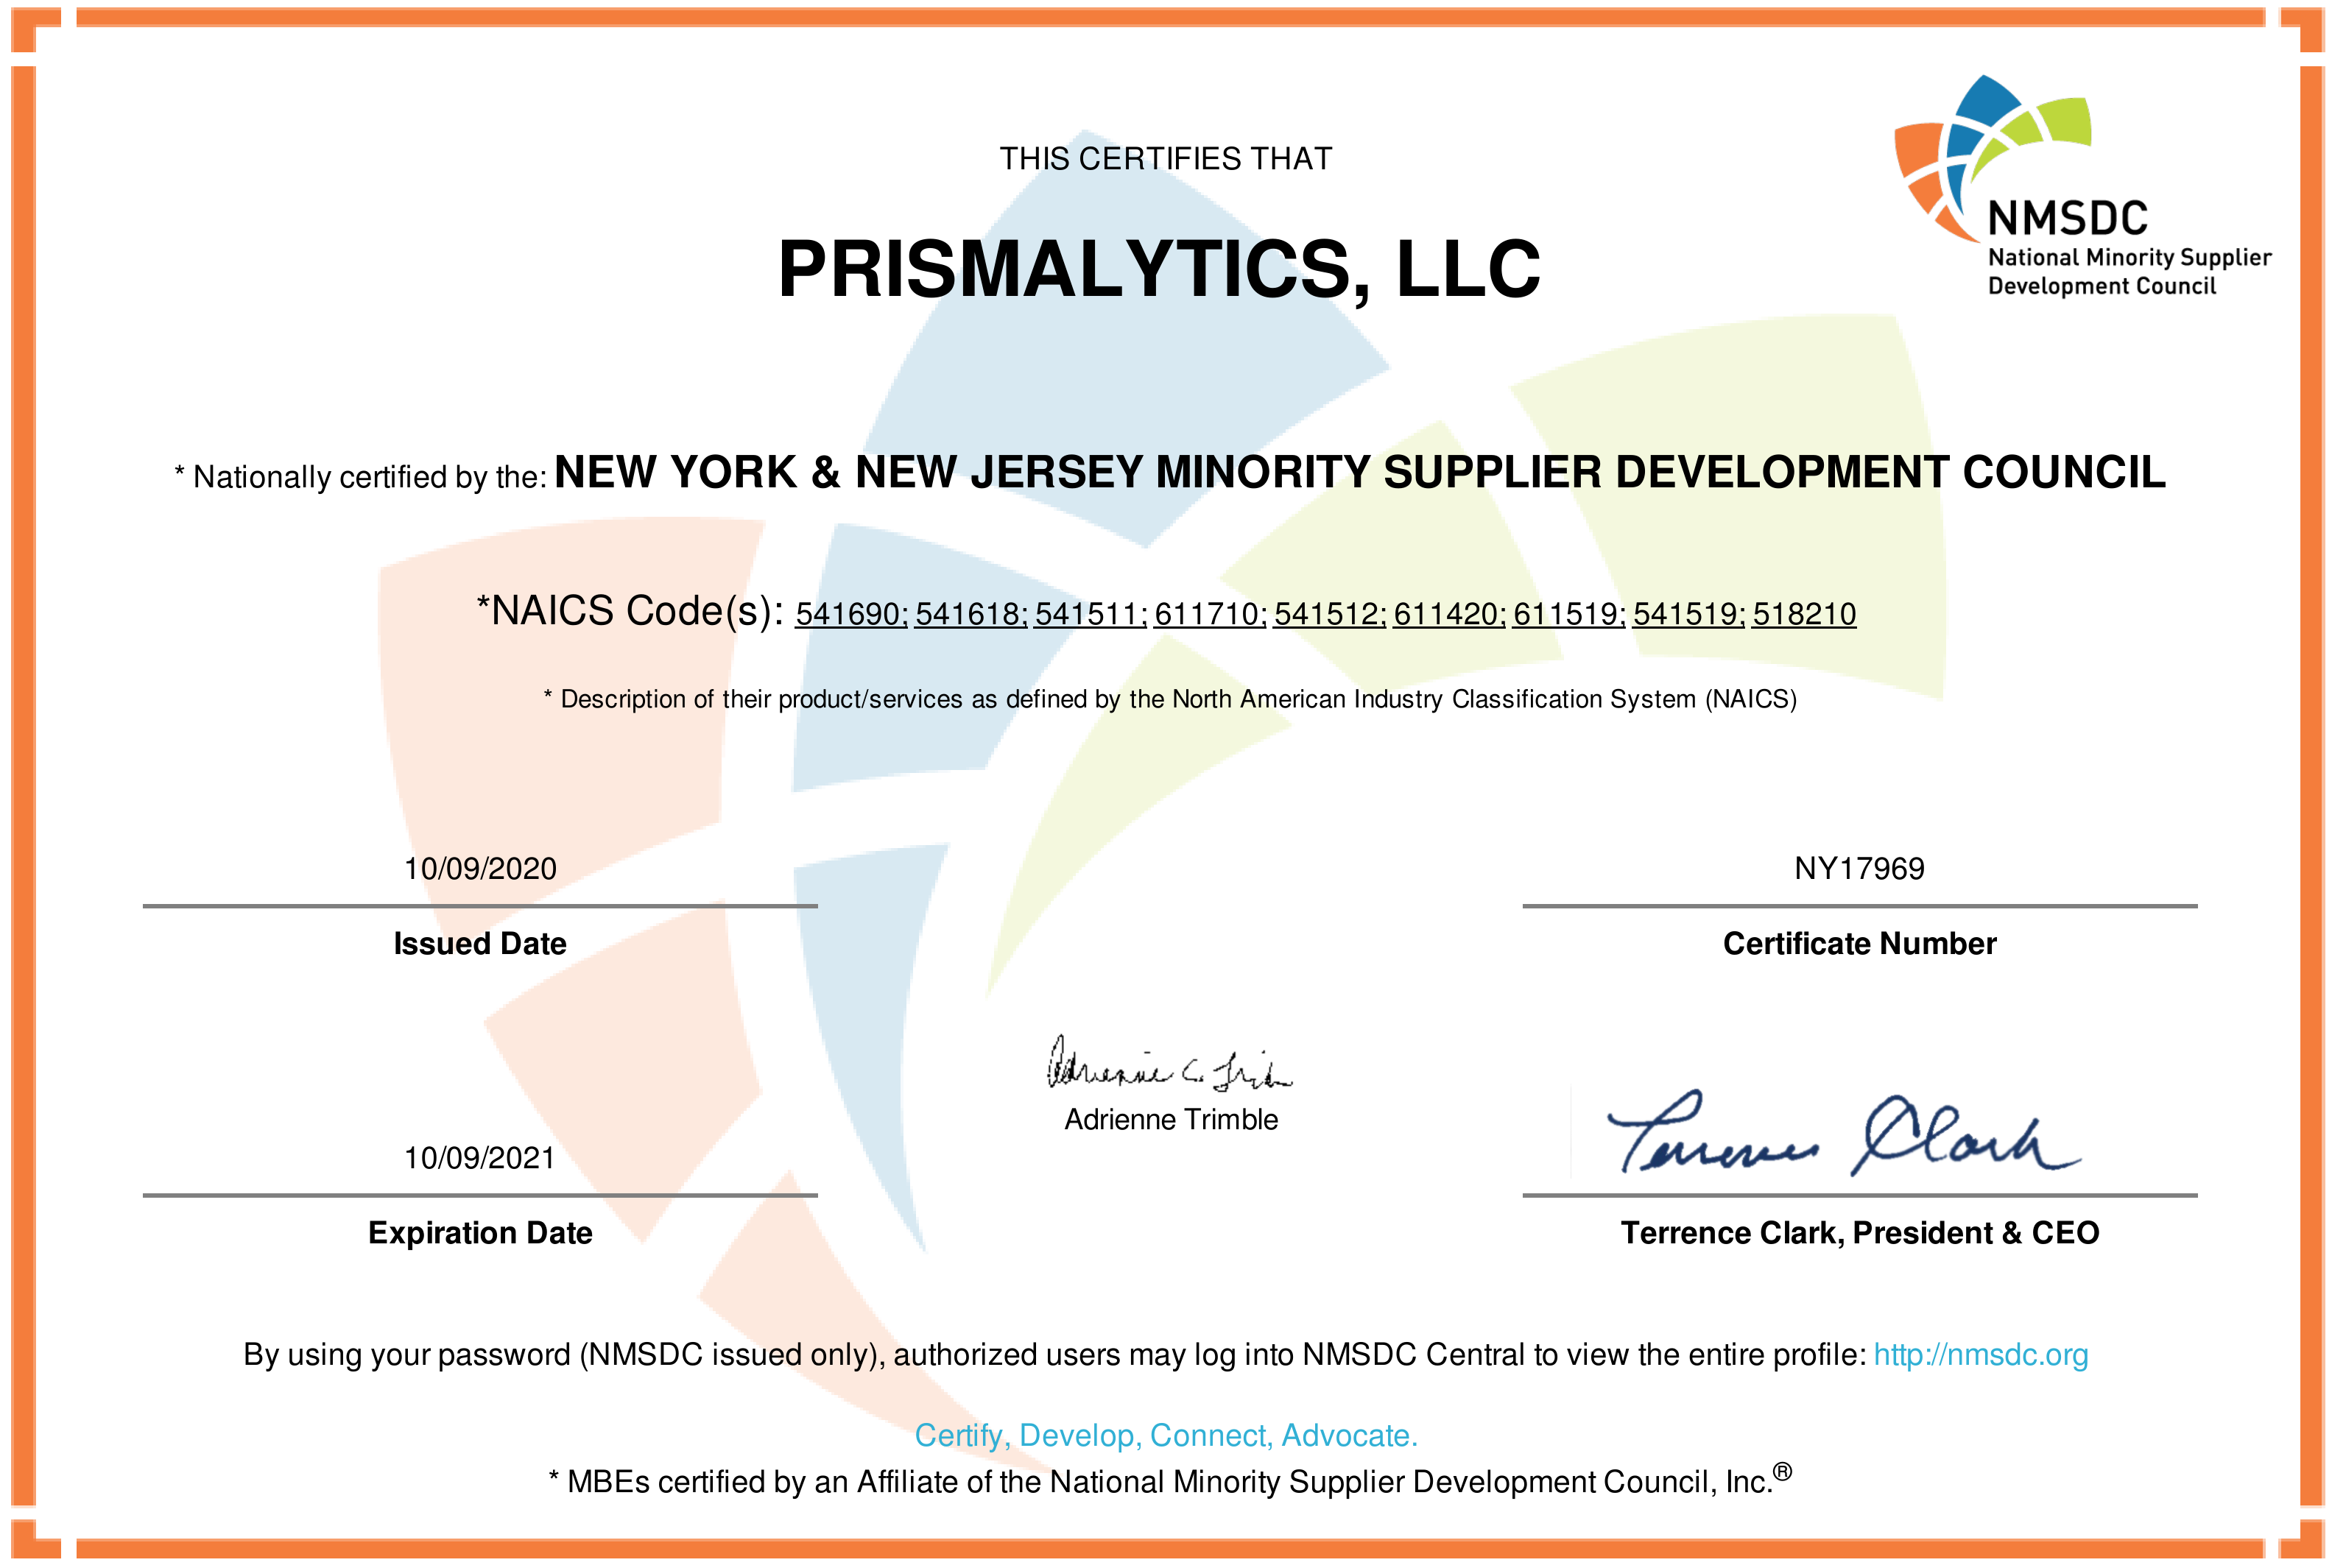 PRISMALYTICS NYNJ NMSDC CERTIFICATION